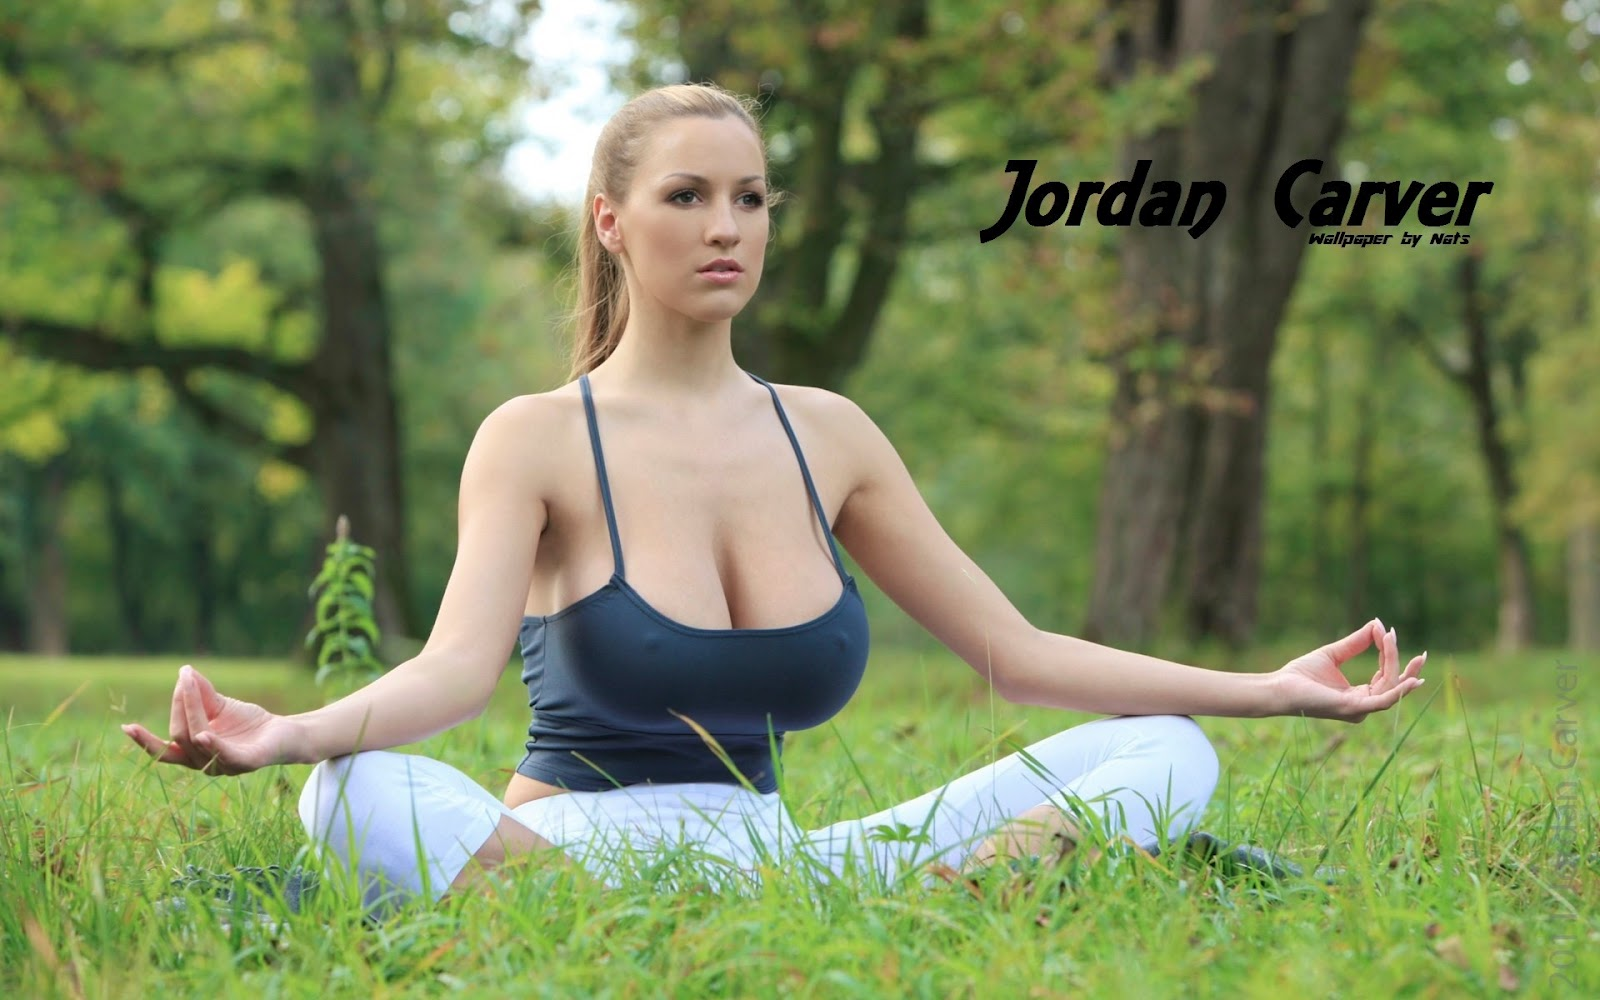 Jordan Carver Yoga 1600x1000 Download Hd Wallpaper Wallpapertip